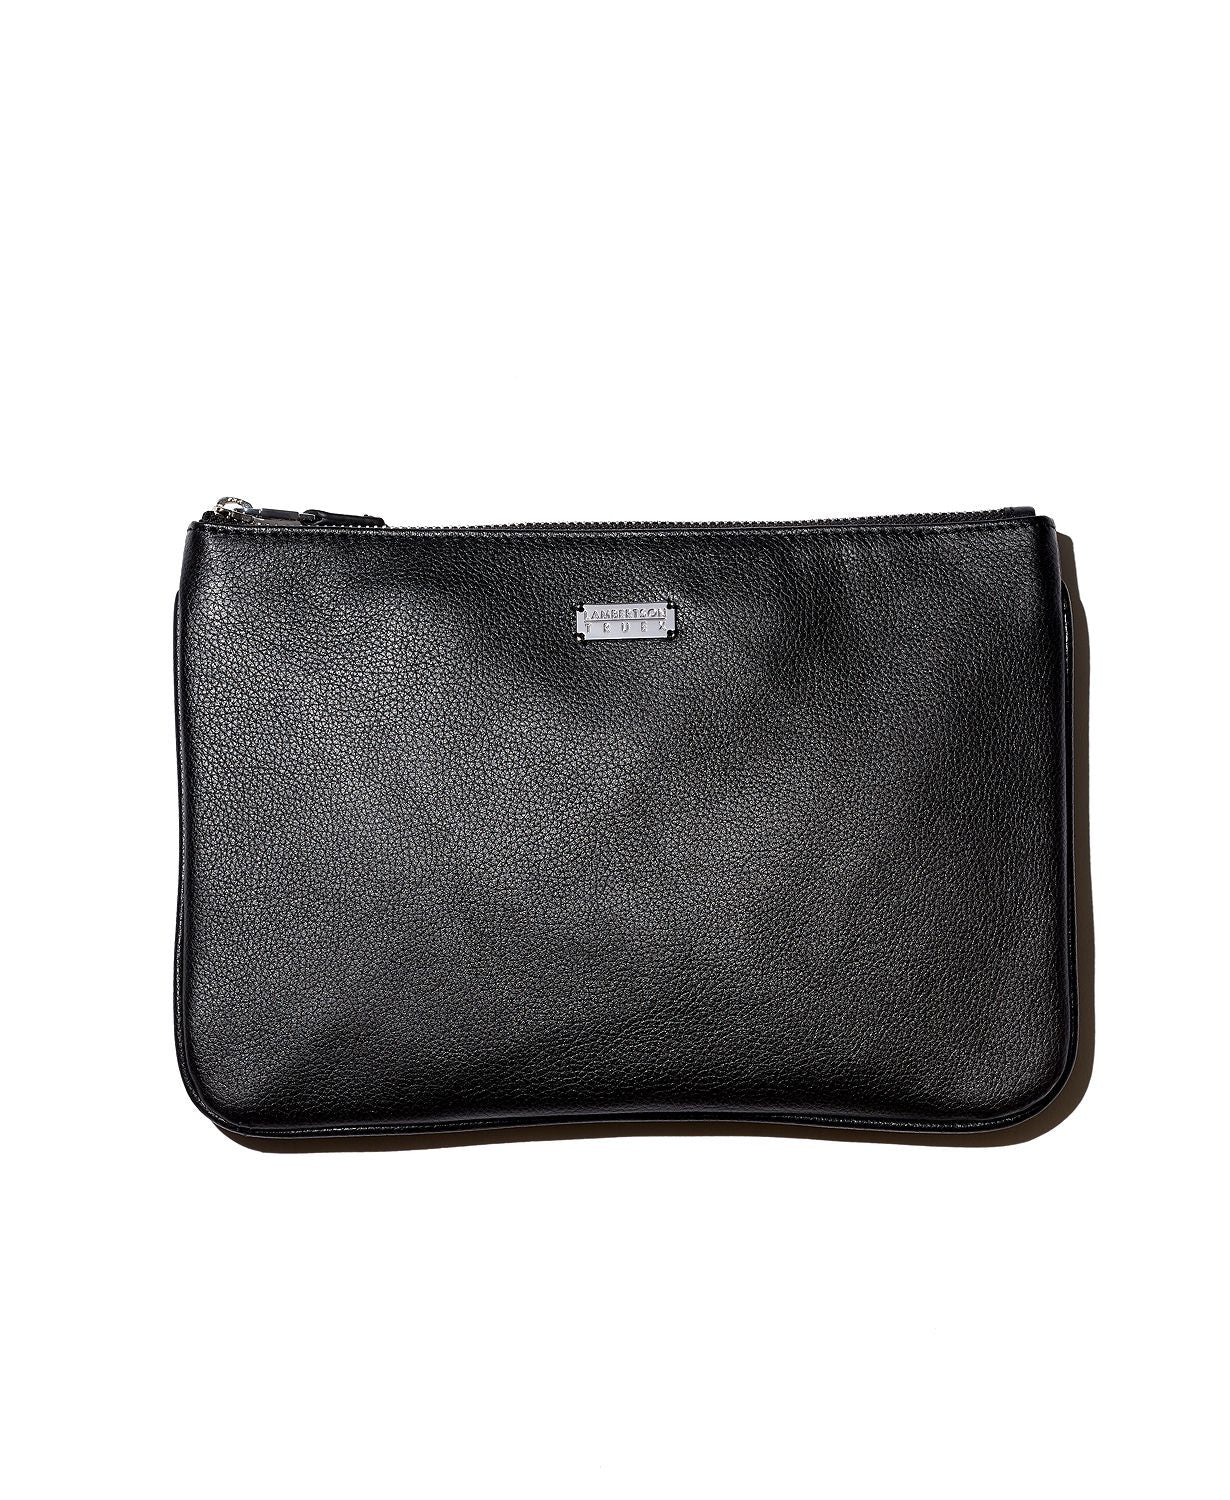 Lambertson Truex Large Pebbled Leather Zip Pouch Black